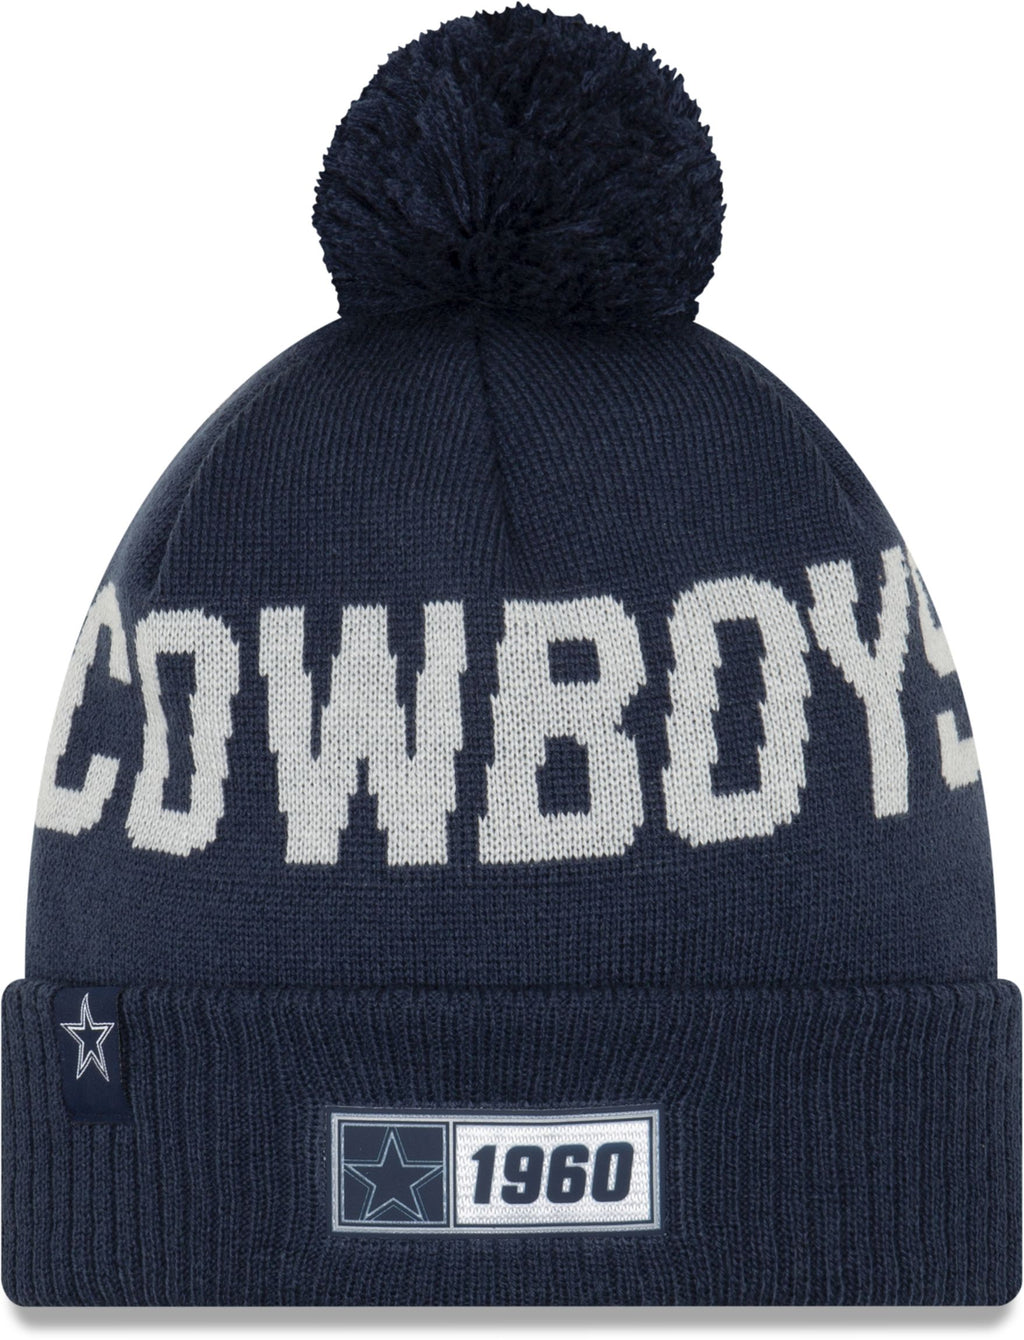 New Era ONF19 Cold Weather Dallas Cowboys Bobble Beanie Hat Blue